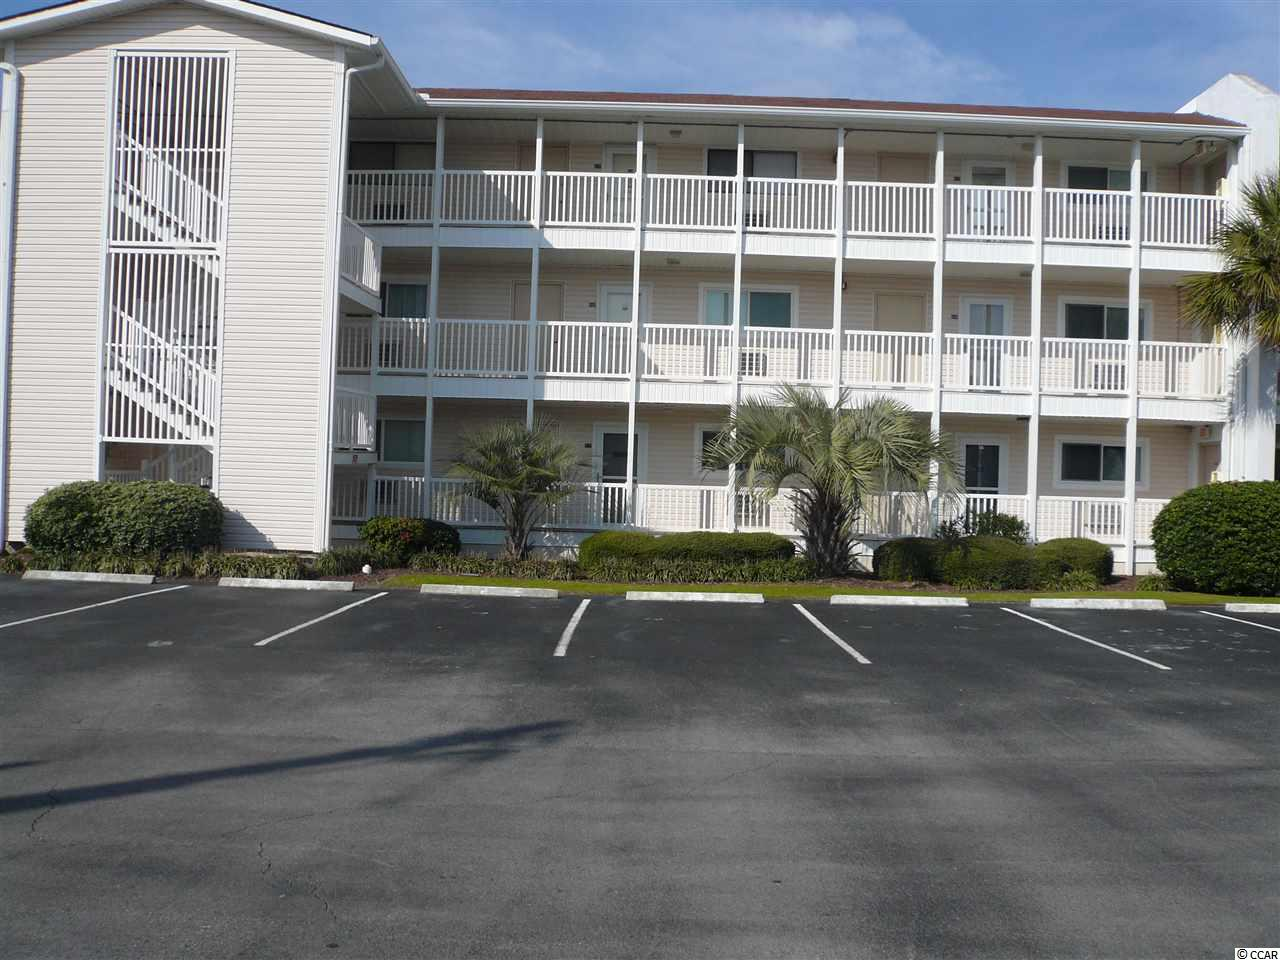 How often do you find a great first floor unit that is one block from the Atlantic? This unit is well maintained, never rented. Newer appliances, new paint, UV tinting on the sliding glass door, new vanity in the bath, a MUST SEE! Don't wait, it won't last long. It's the one for you with access to NMB restaurants, entertainment, shopping, golf and of course, the ocean!